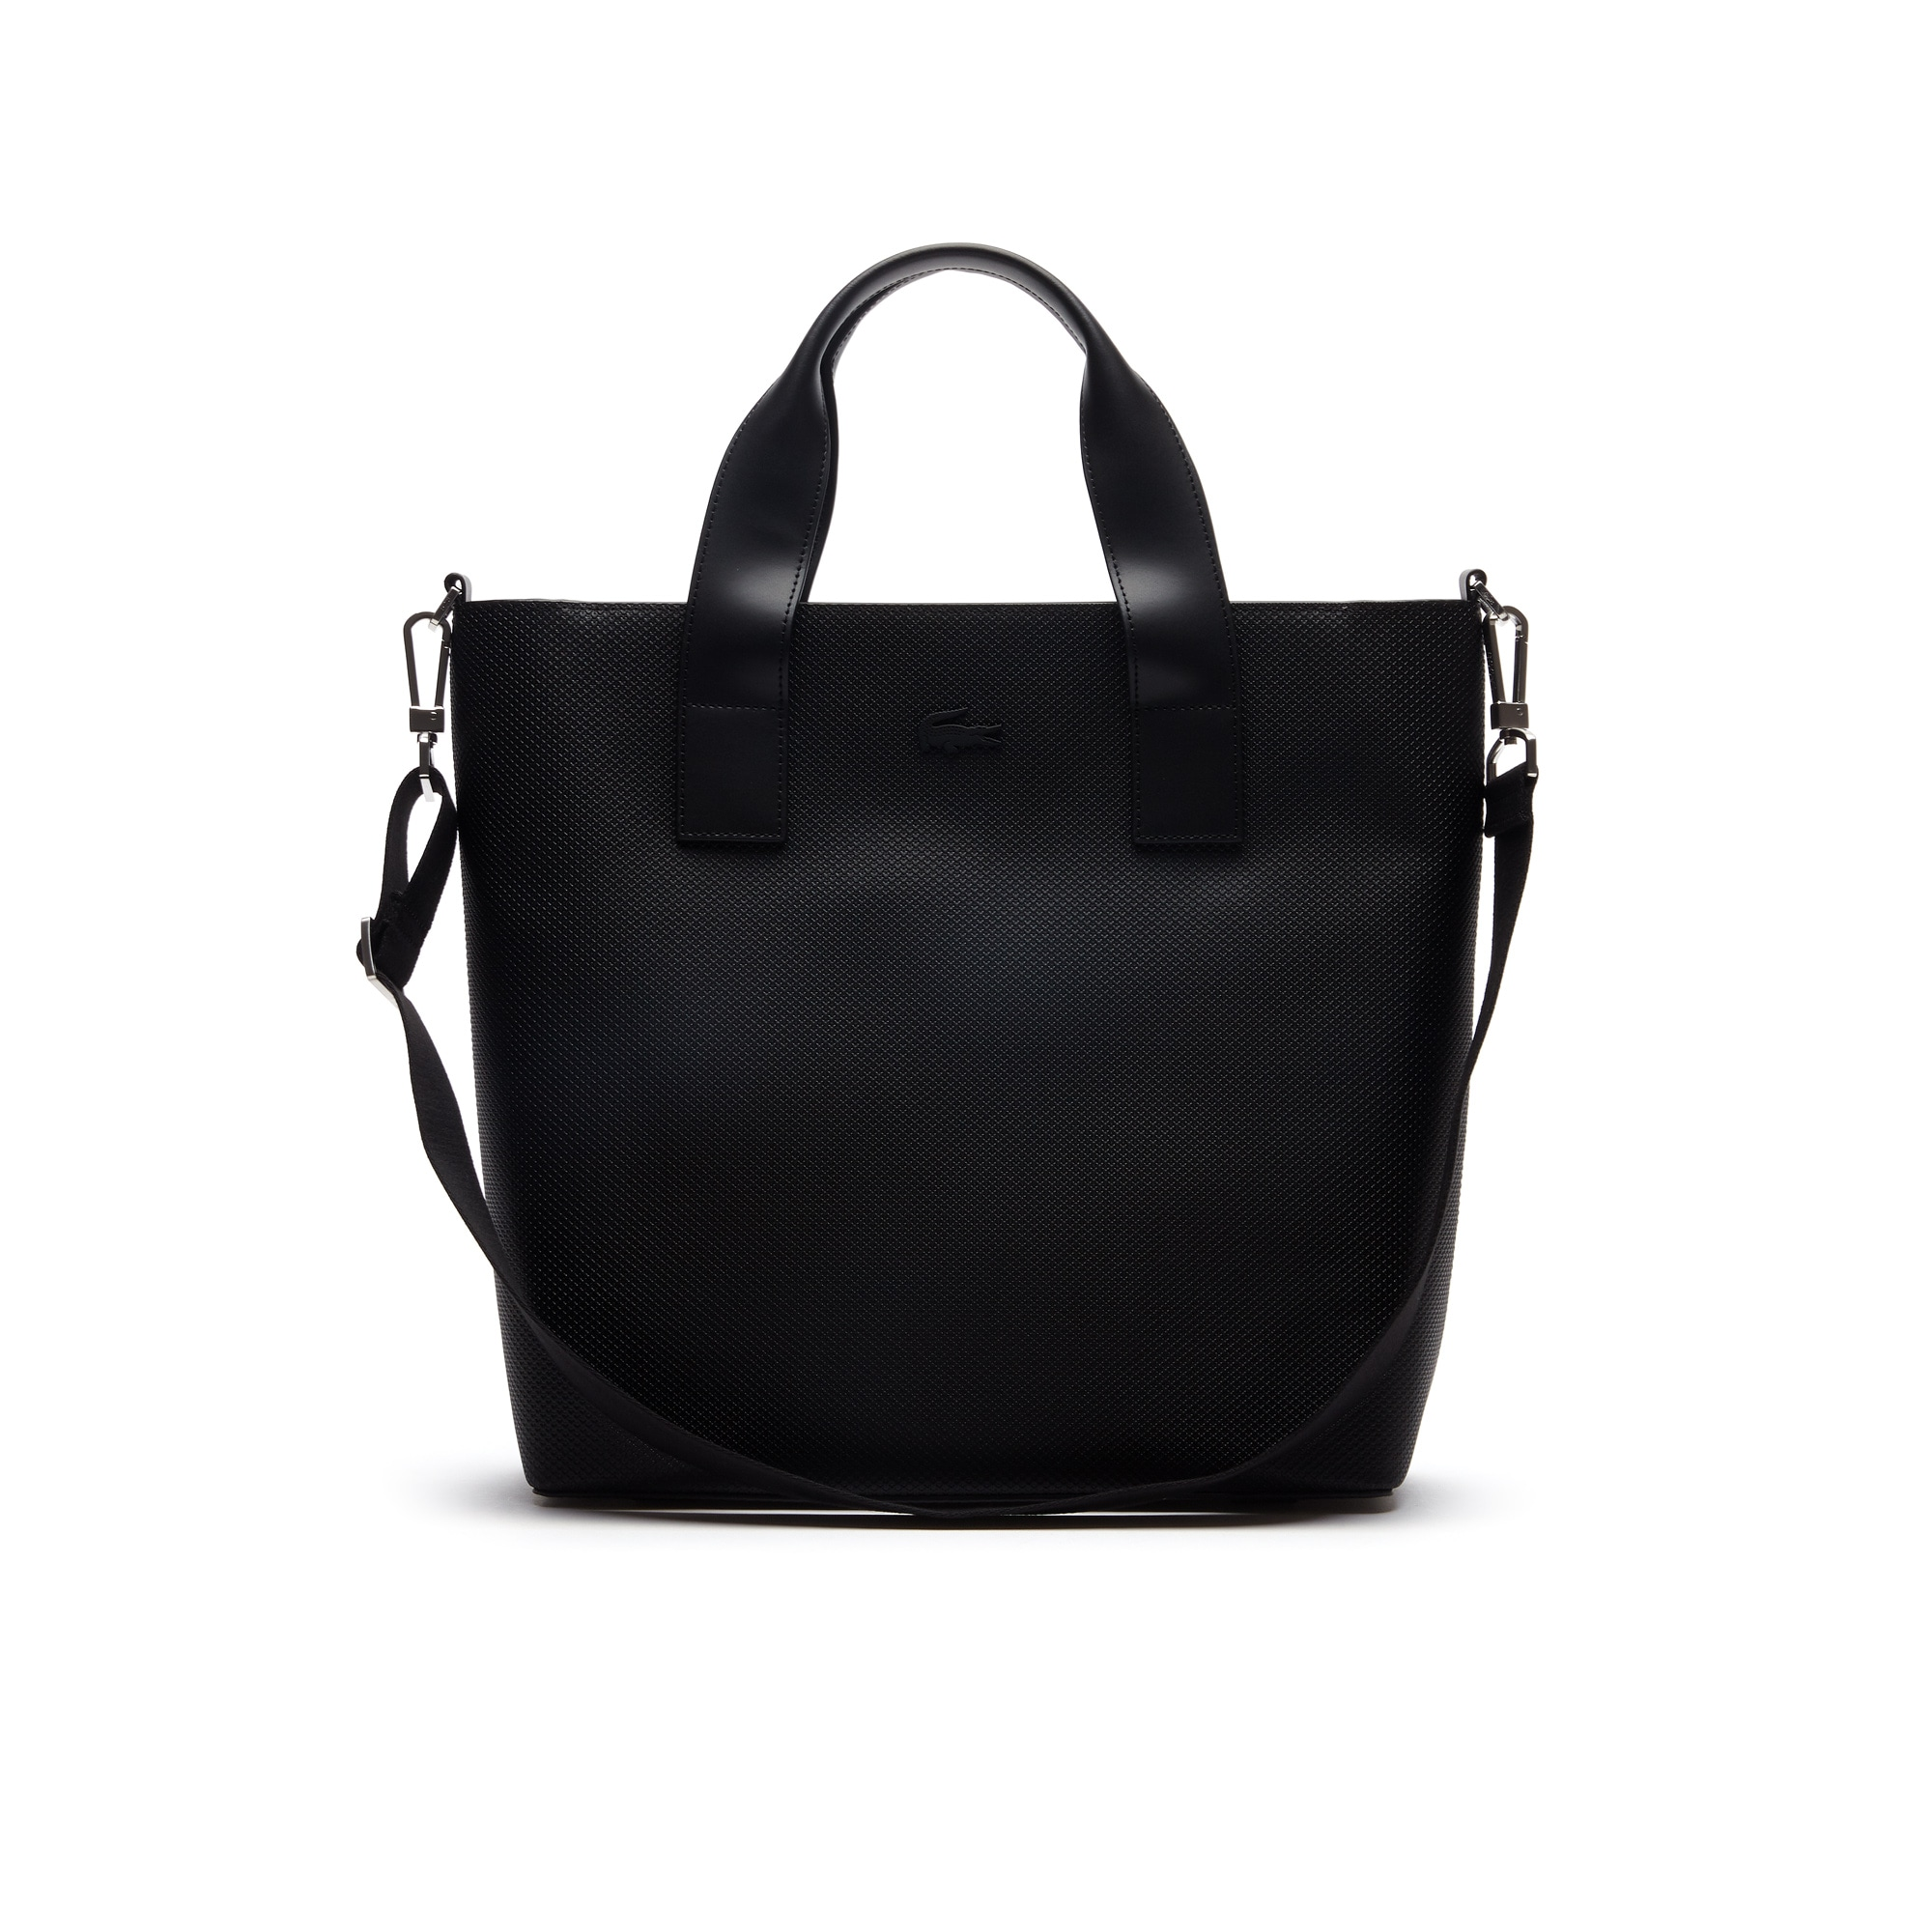 라코스테 샨타코 세로형 토트백 Lacoste Mens Chantaco Pique Leather Vertical Tote Bag,BLACK